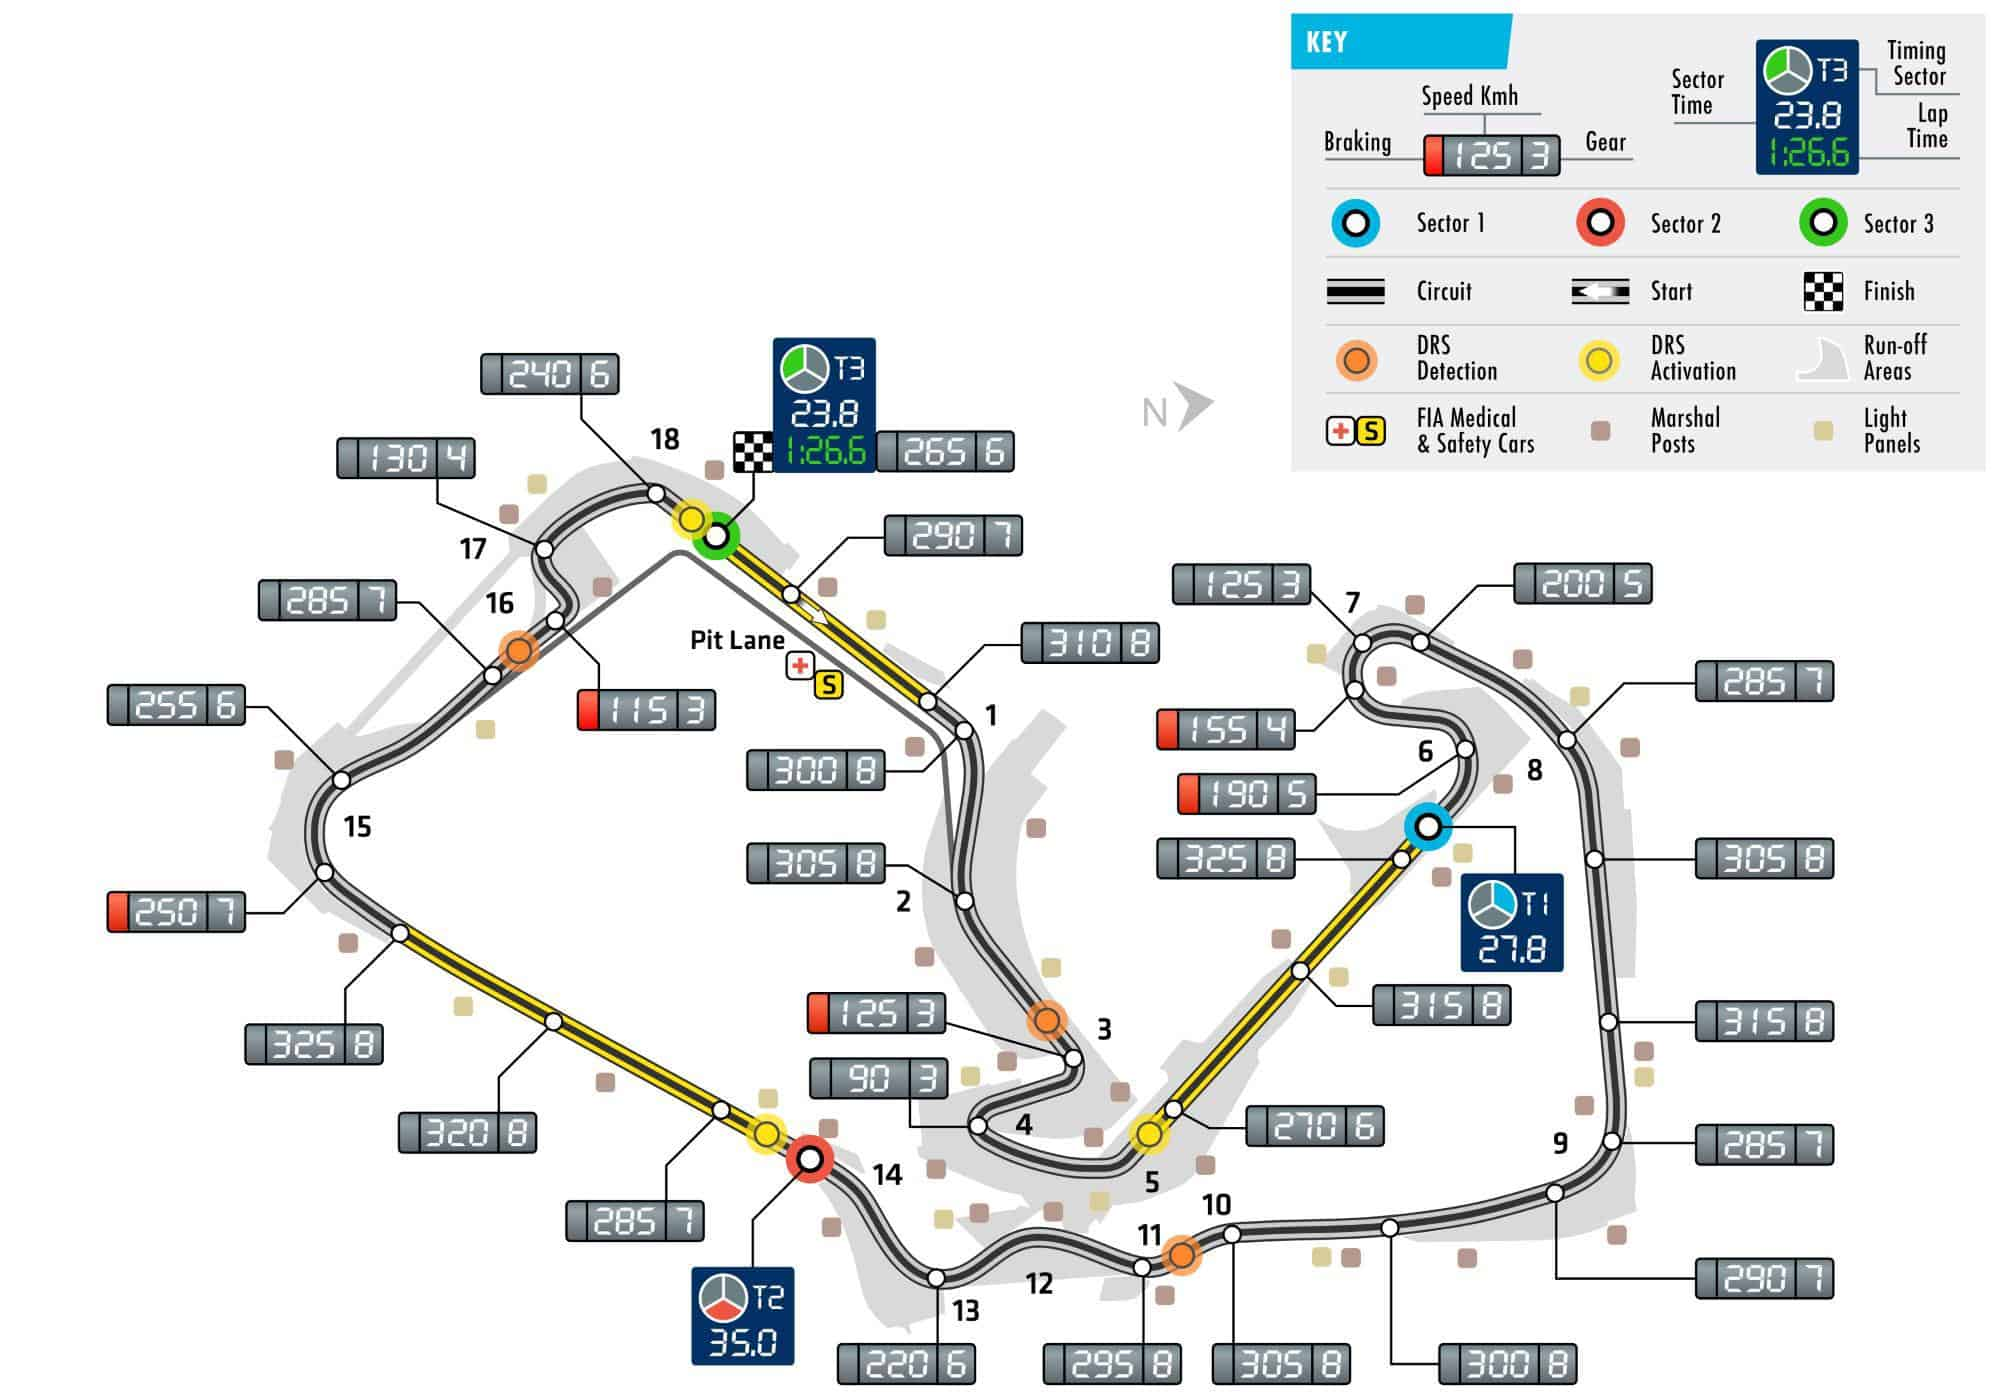 British GP F1 2018 Silverstone track map Photo FIA